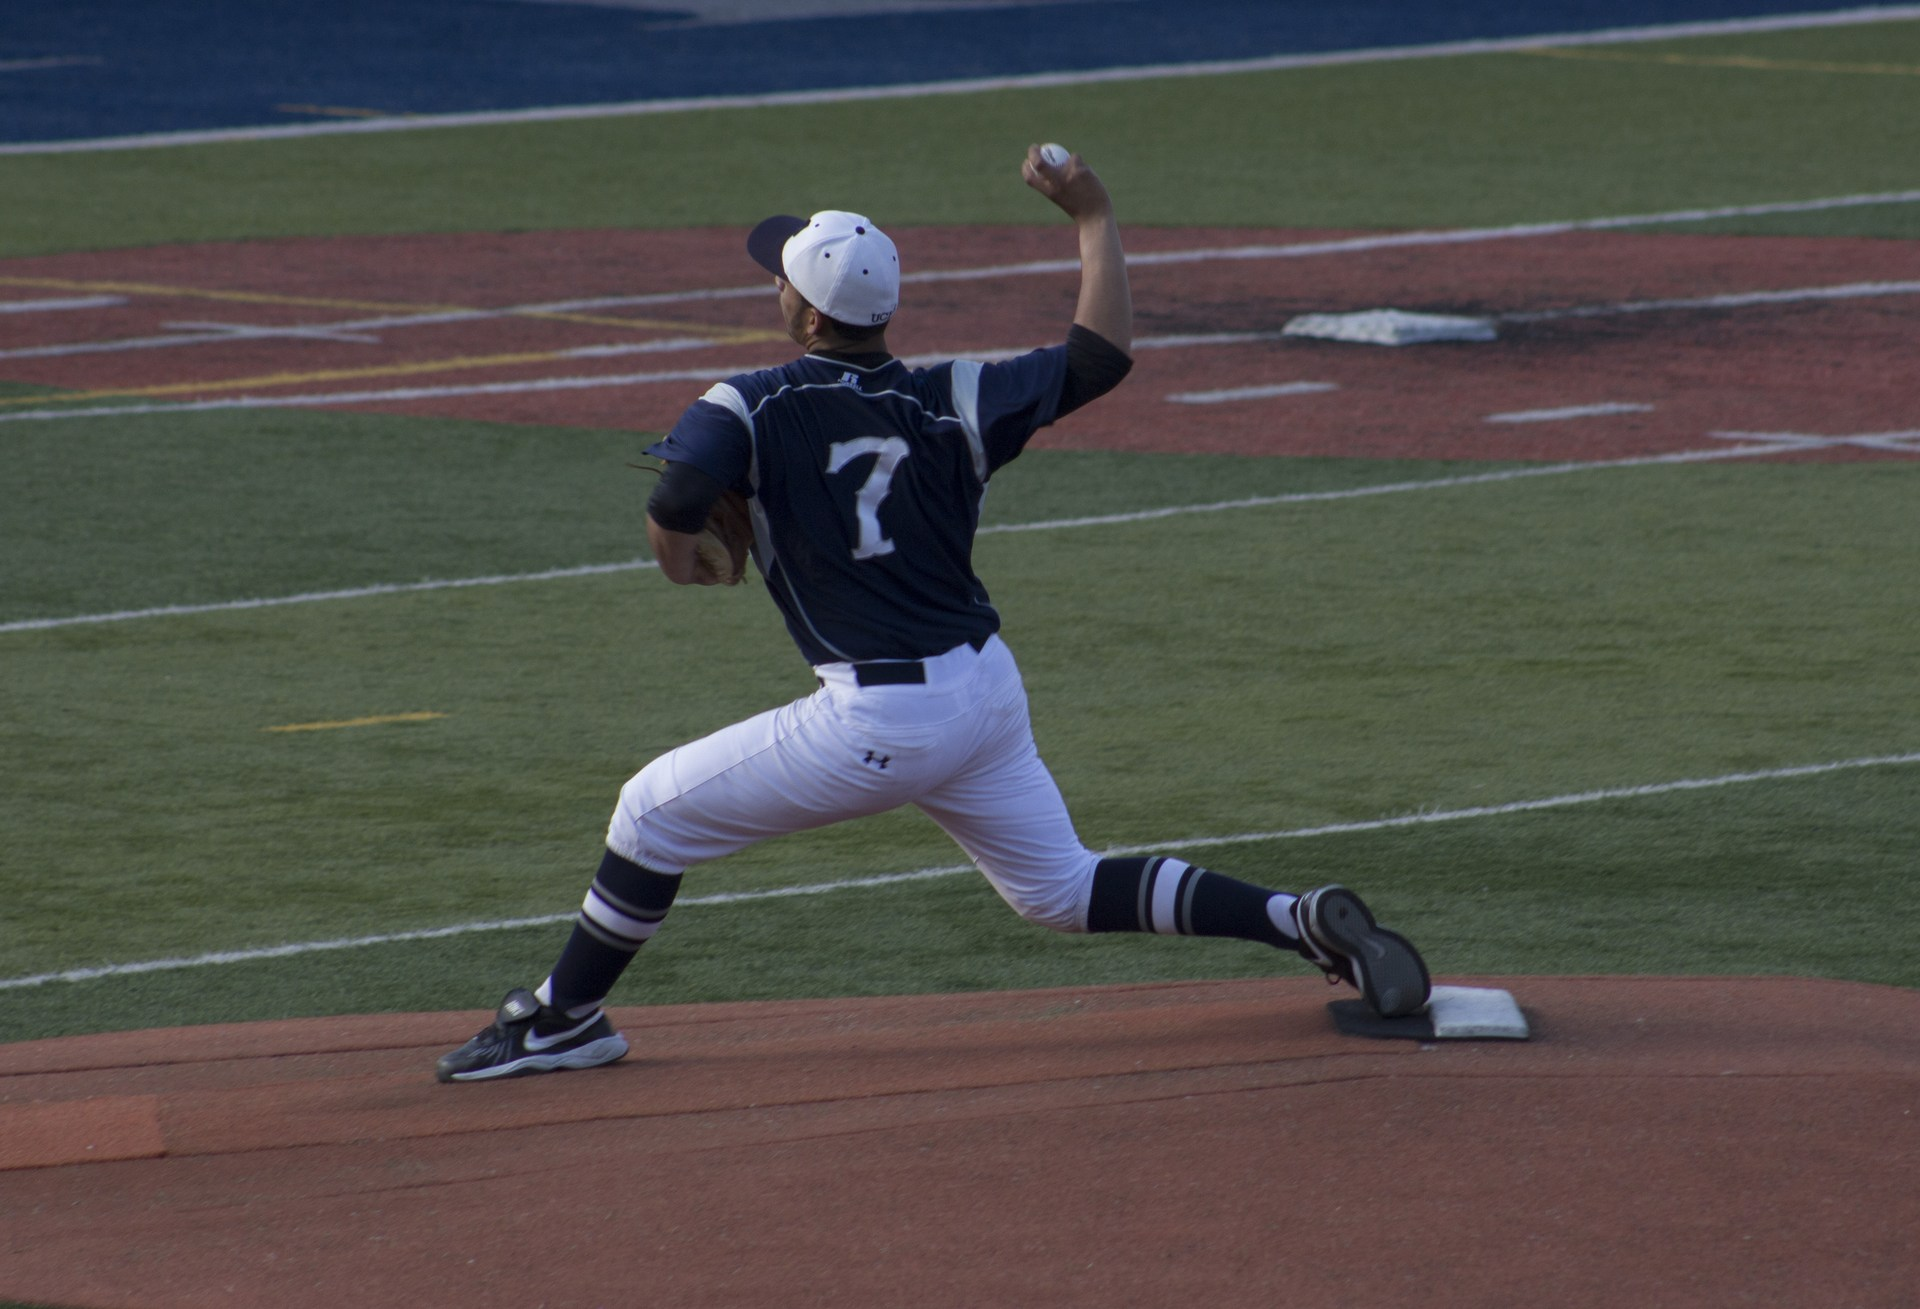 throwing ball to catcher